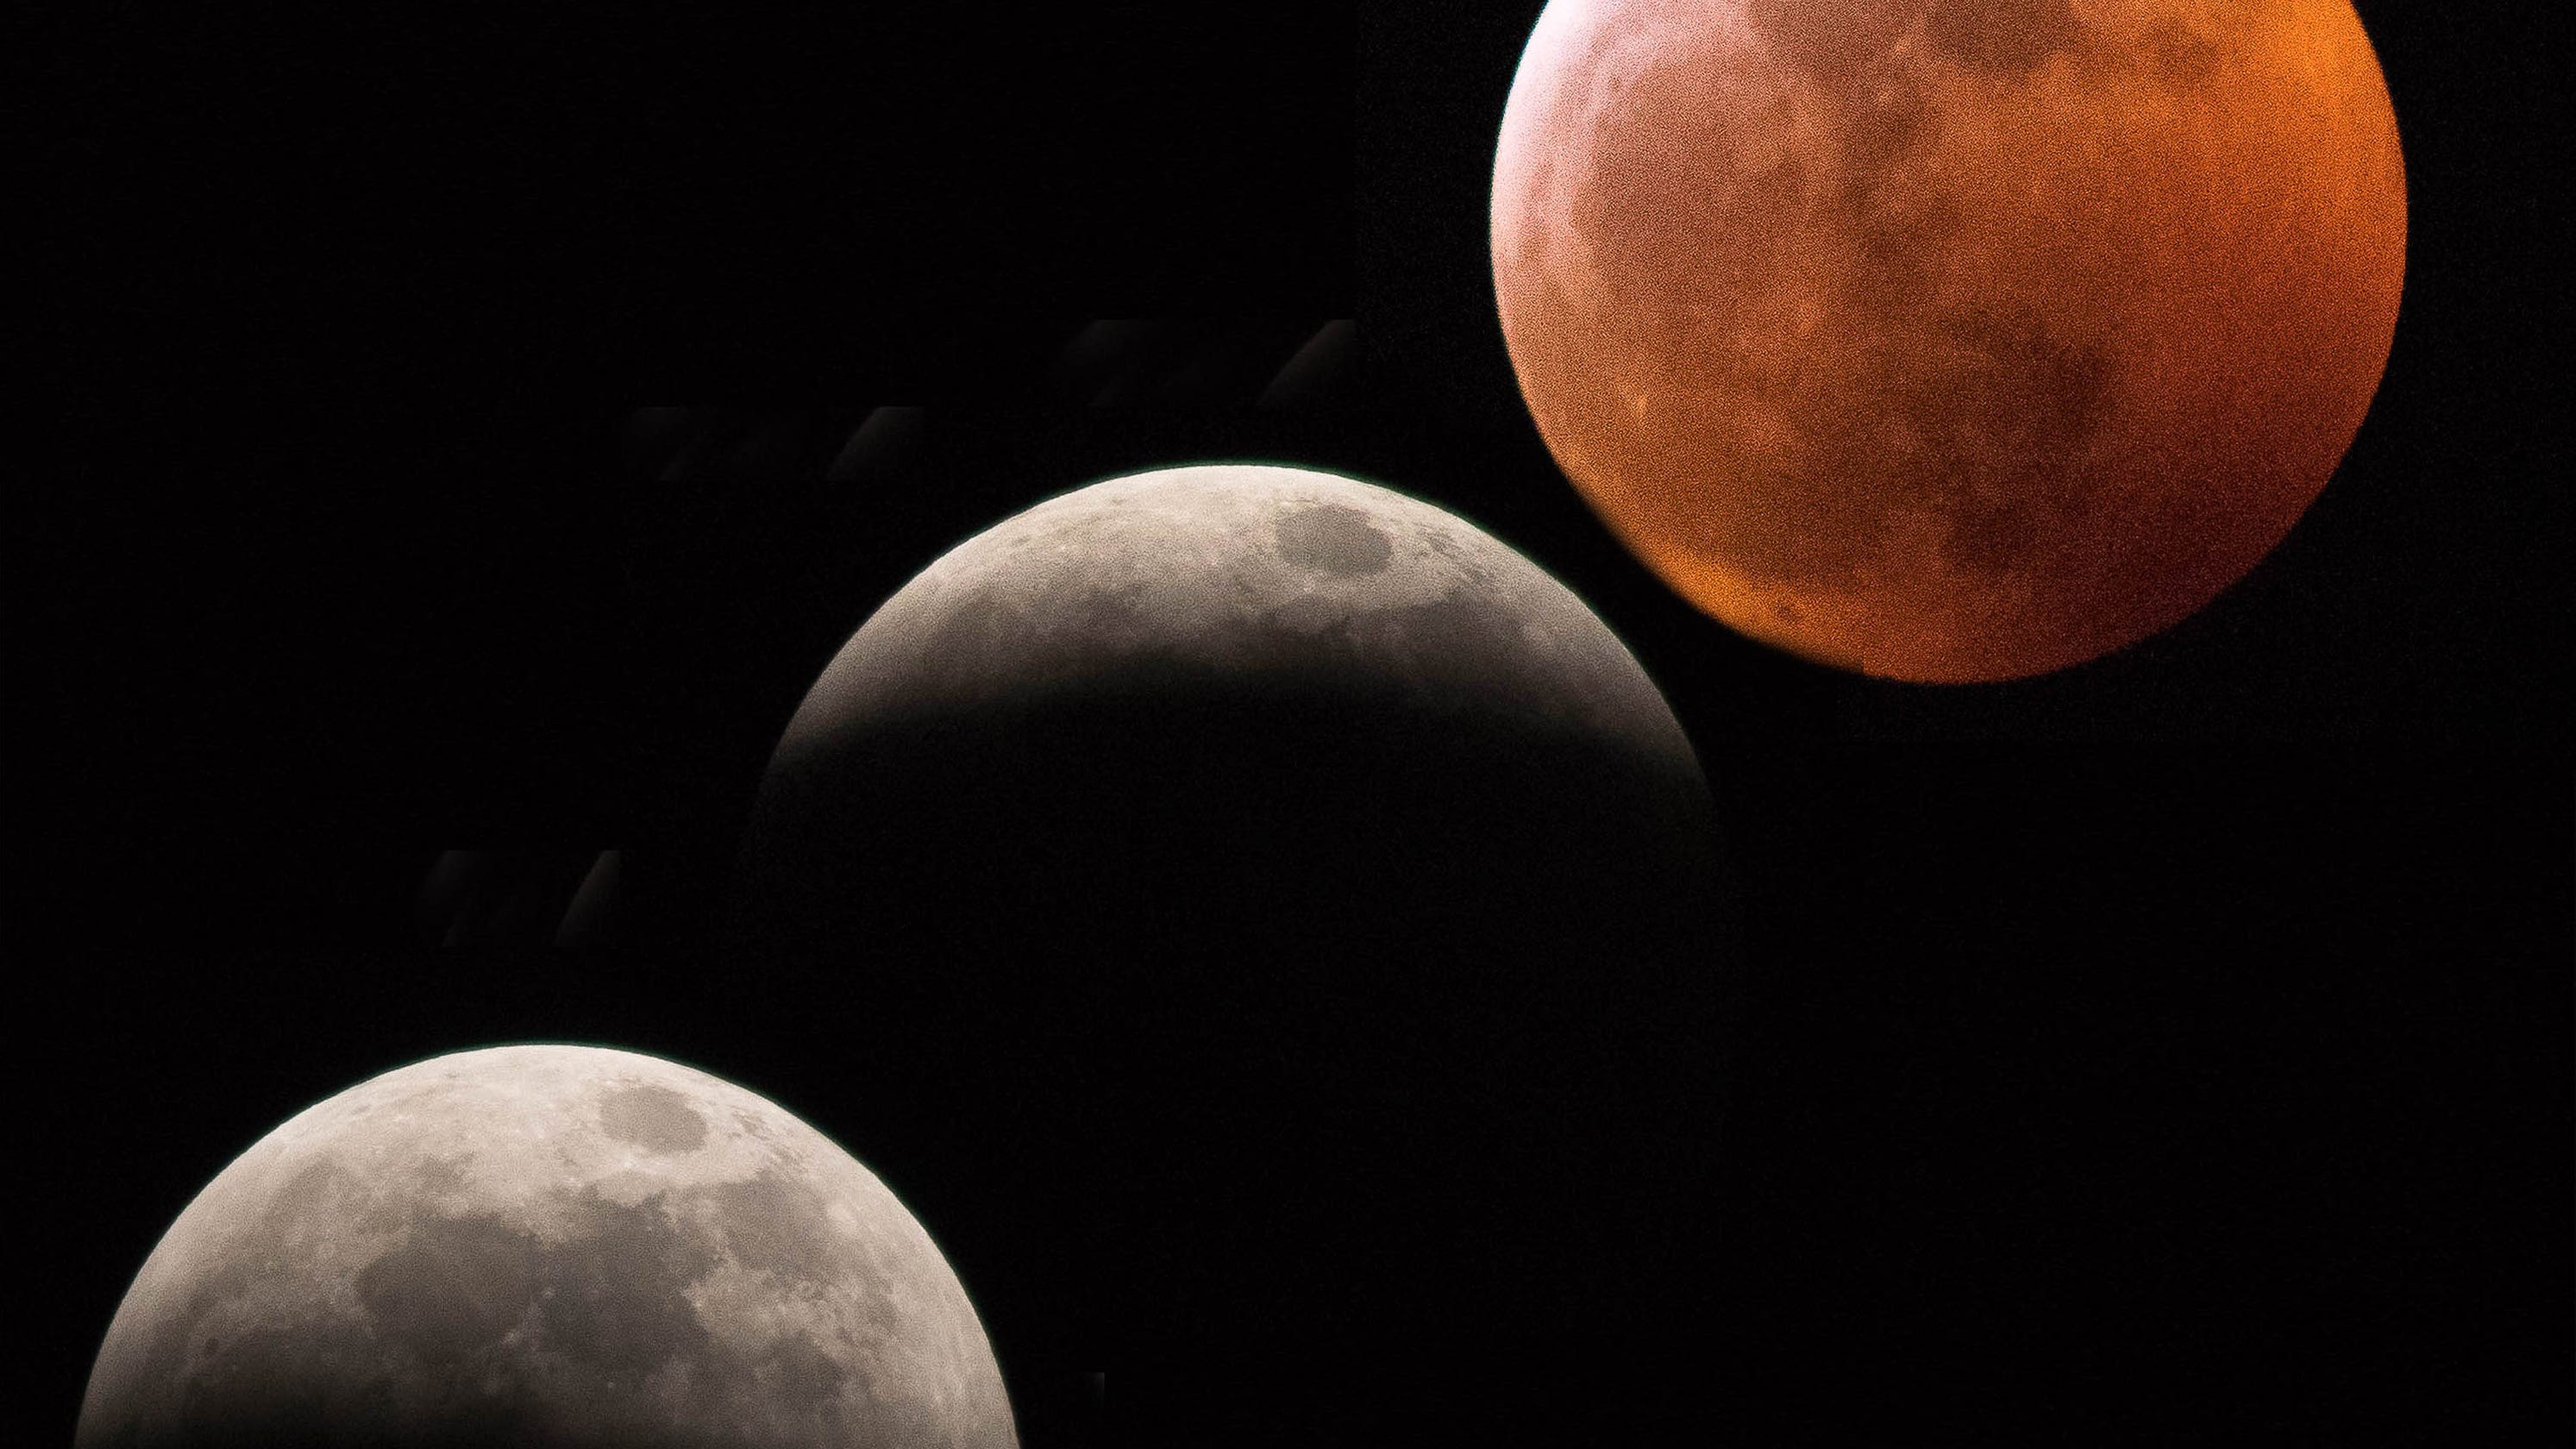 blood moon january 2019 viewing guide - photo #14